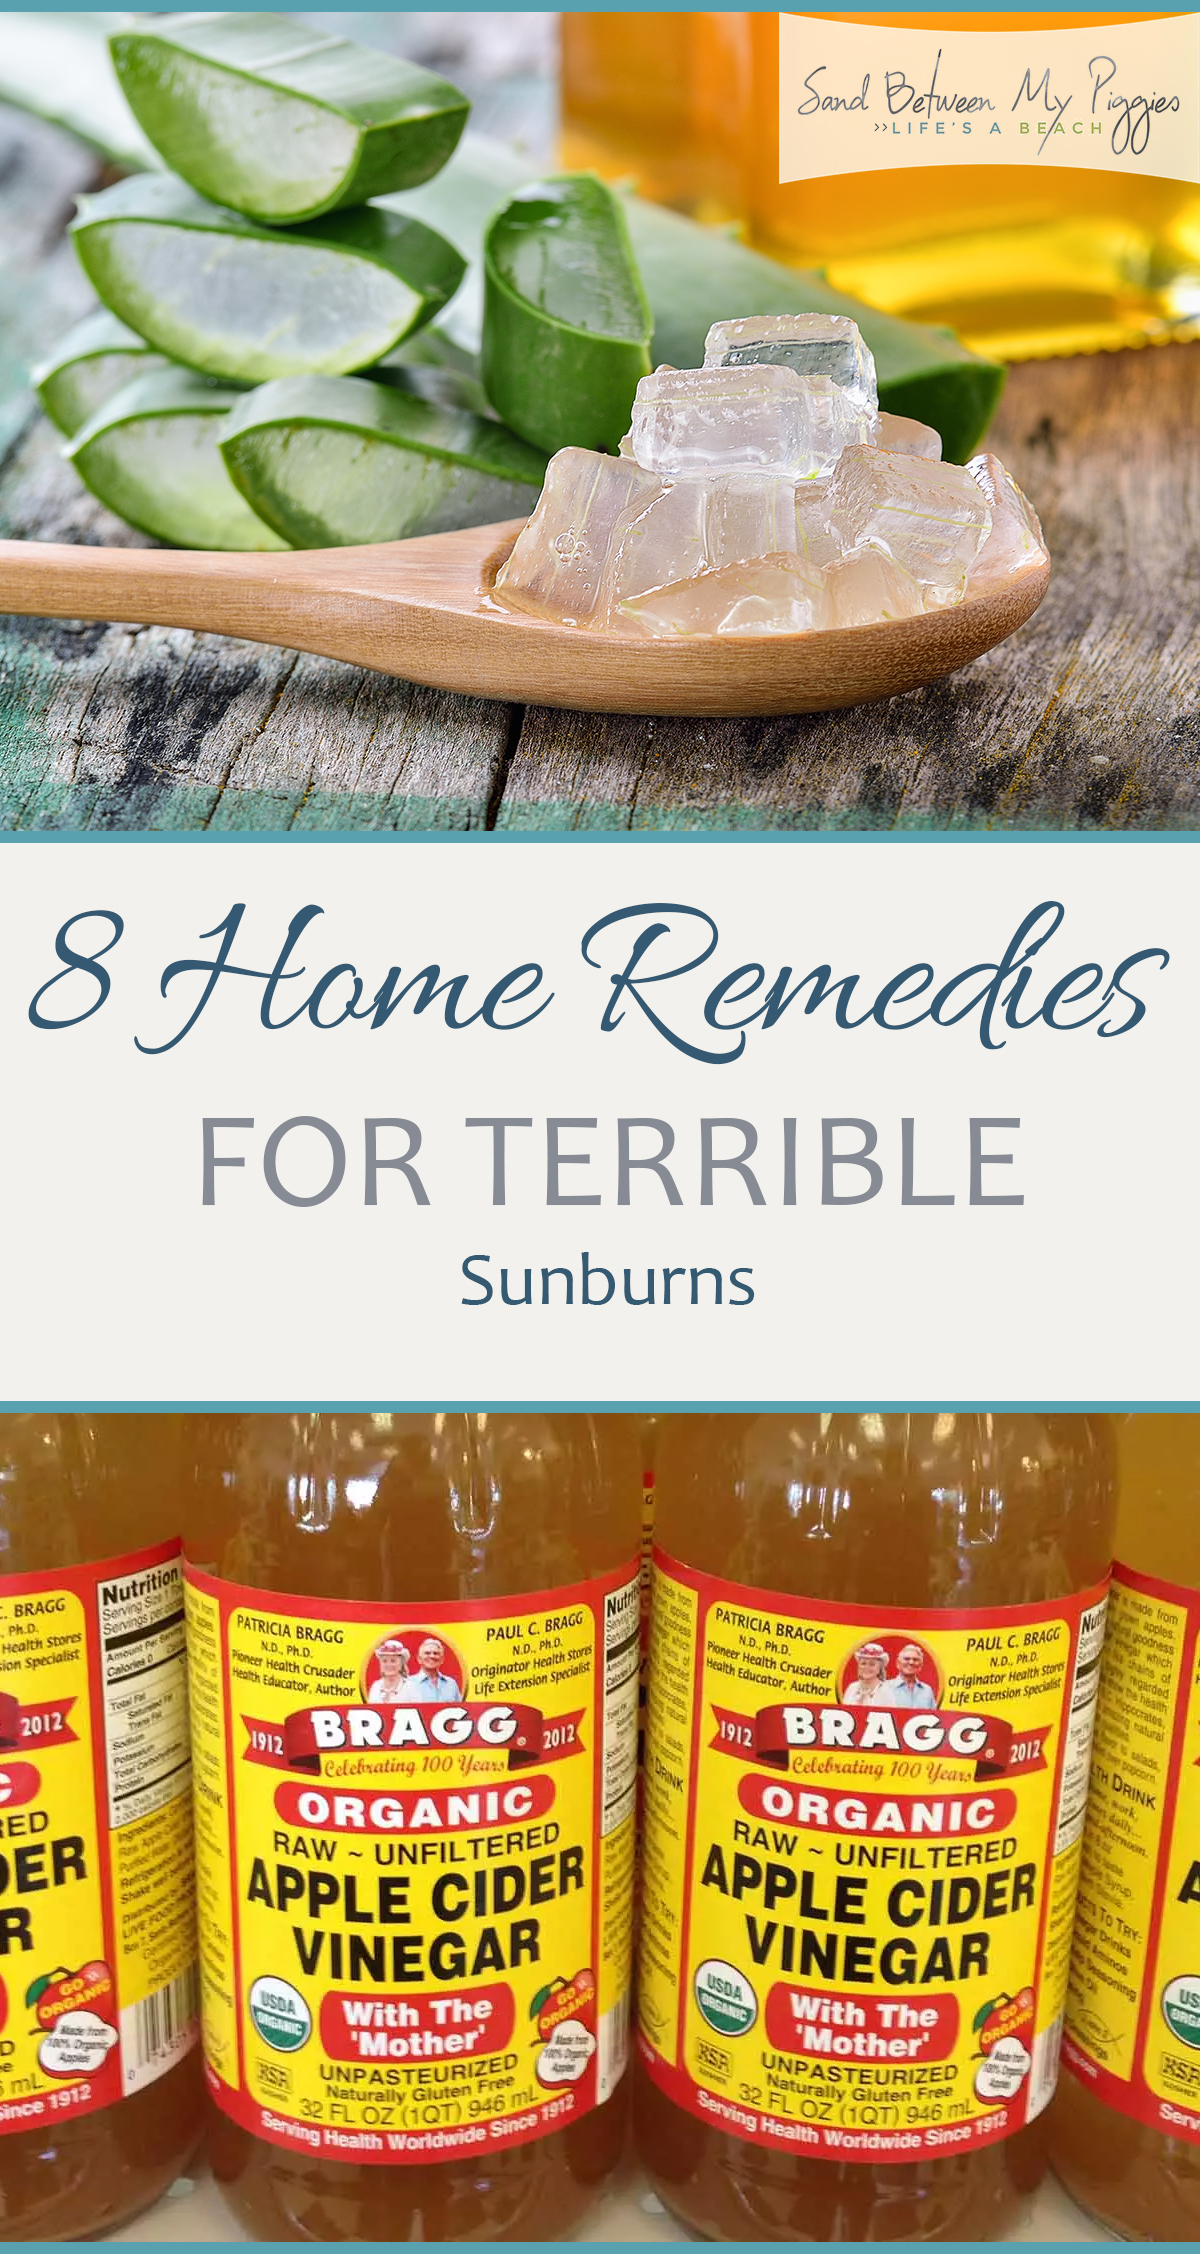 8 Home Remedies for Terrible Sunburns| Home Remedies, Home Remedies for Sunburns, Sunburn Remedies, Fast Ways to Help Sunburns, Natural Living, Natural Remedy for Sunburns